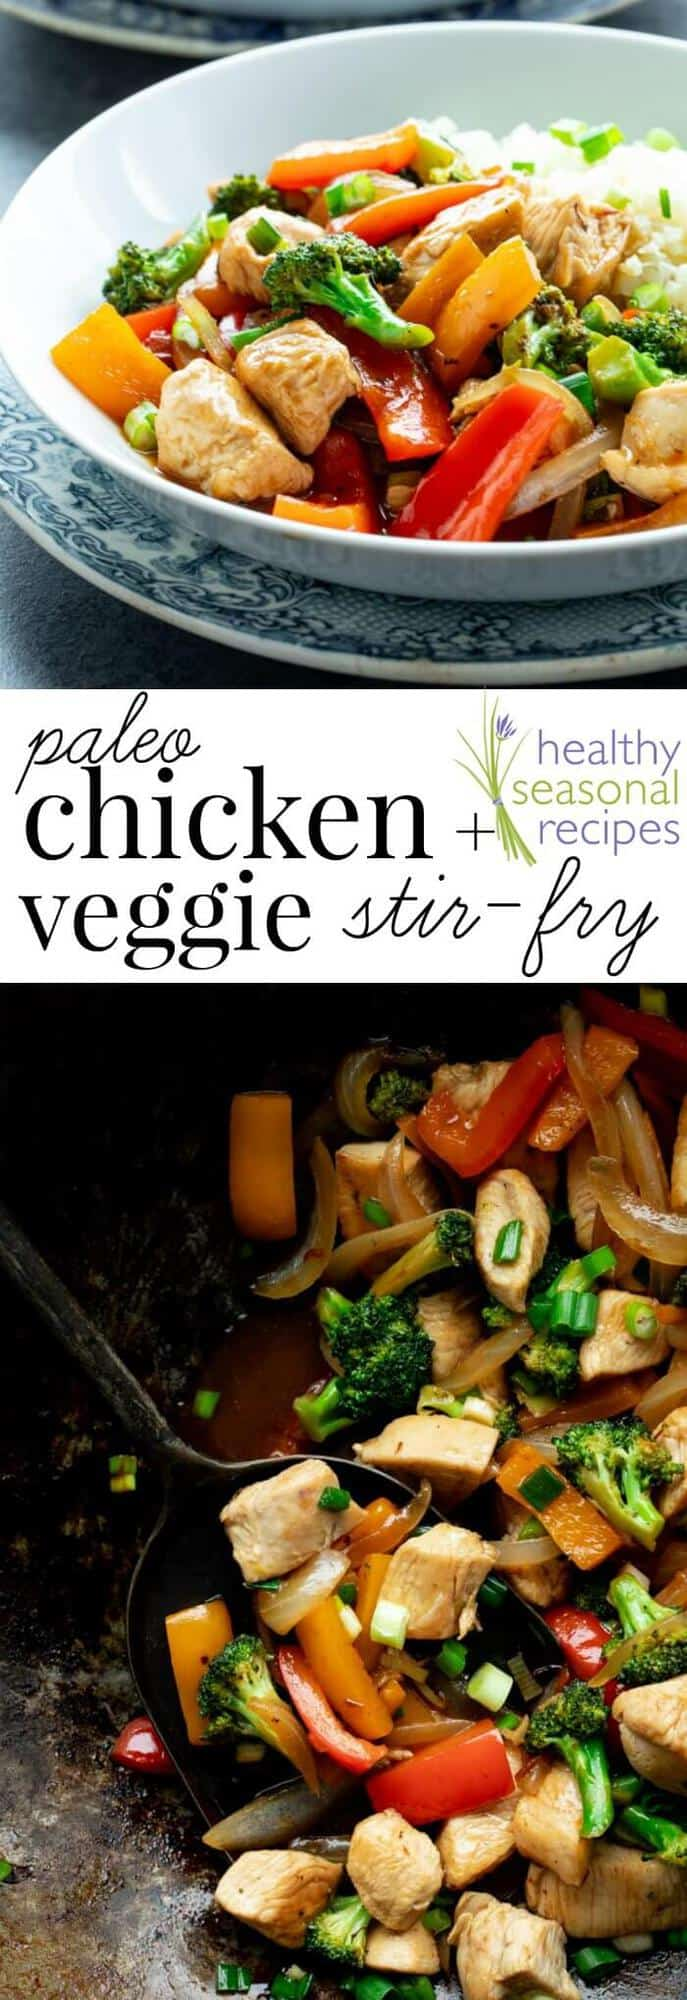 Forget about take-out! This easy and healthy Chicken and Veggie Stir-fry is a 30 minute veggie-heavy dinner the whole family will love. It\'s grain-free and soy-free so that means it\'s Paleo friendly! It\'s loaded with broccoli, peppers and boneless skinless chicken breast. #paleo #stirfry #chicken #healthy #easy #30minuterecipe #dinner #entree #broccoli #peppers #veggies #chickenandveggies #grainfree #soyfree